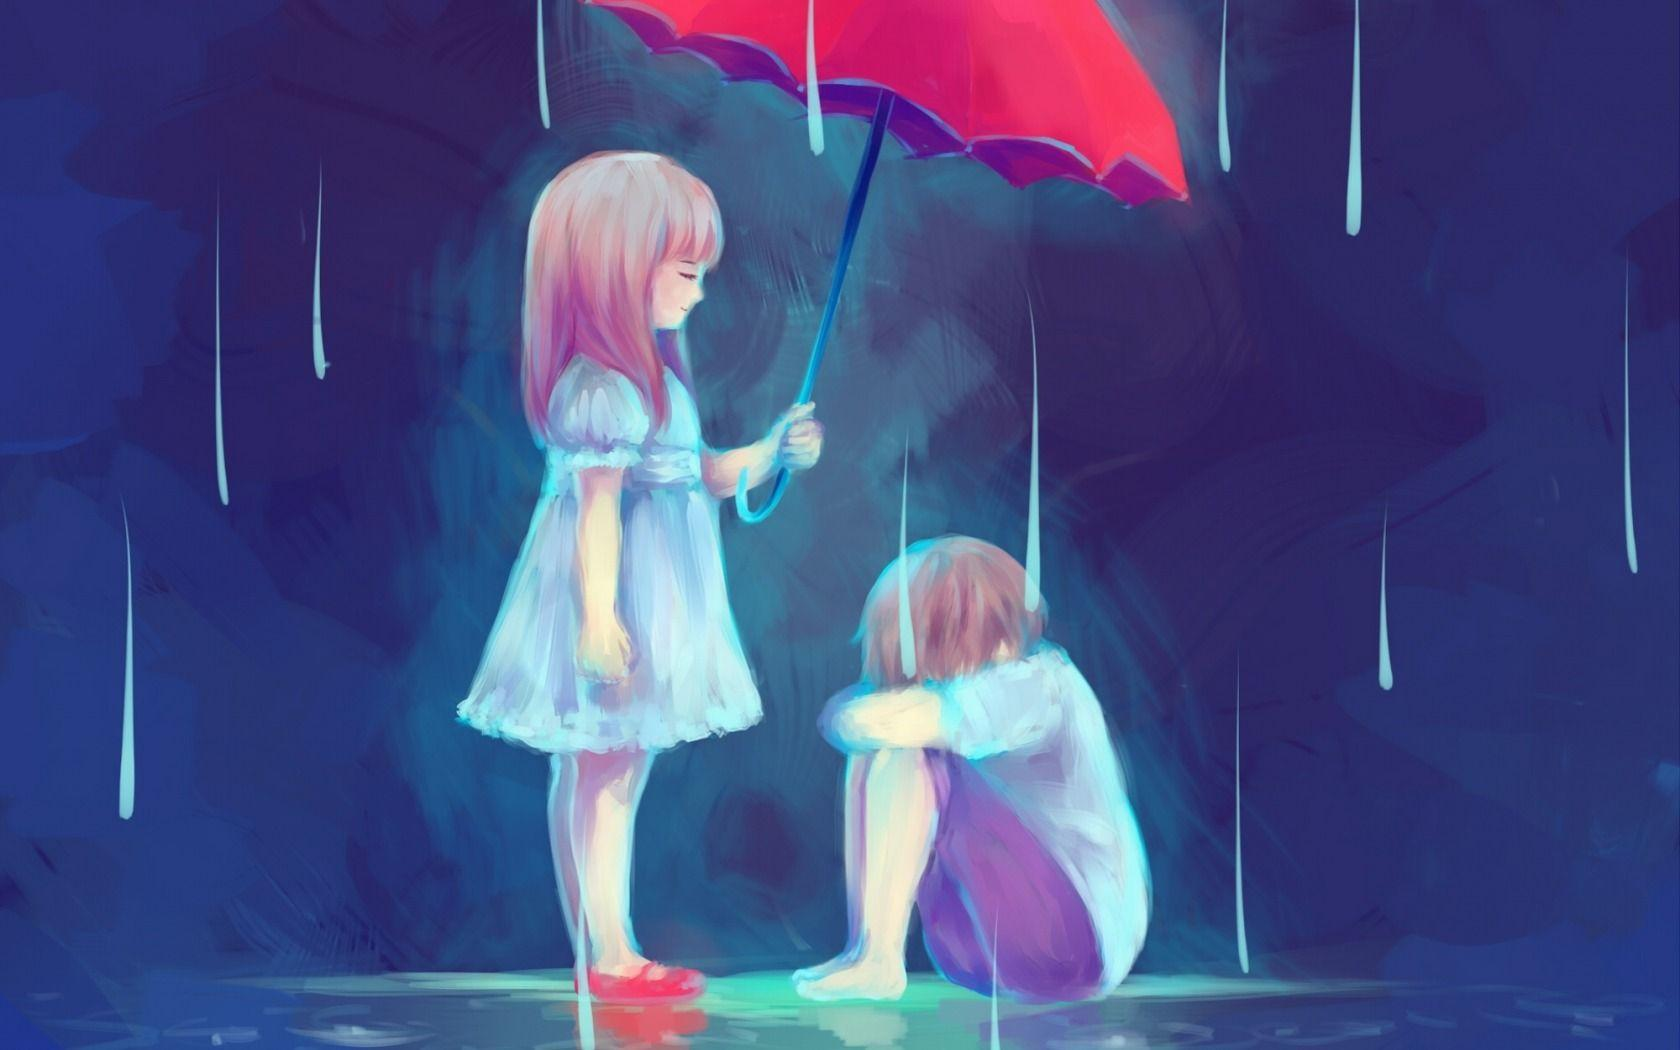 Sad painting of anime couple wallpaper hd desktop background